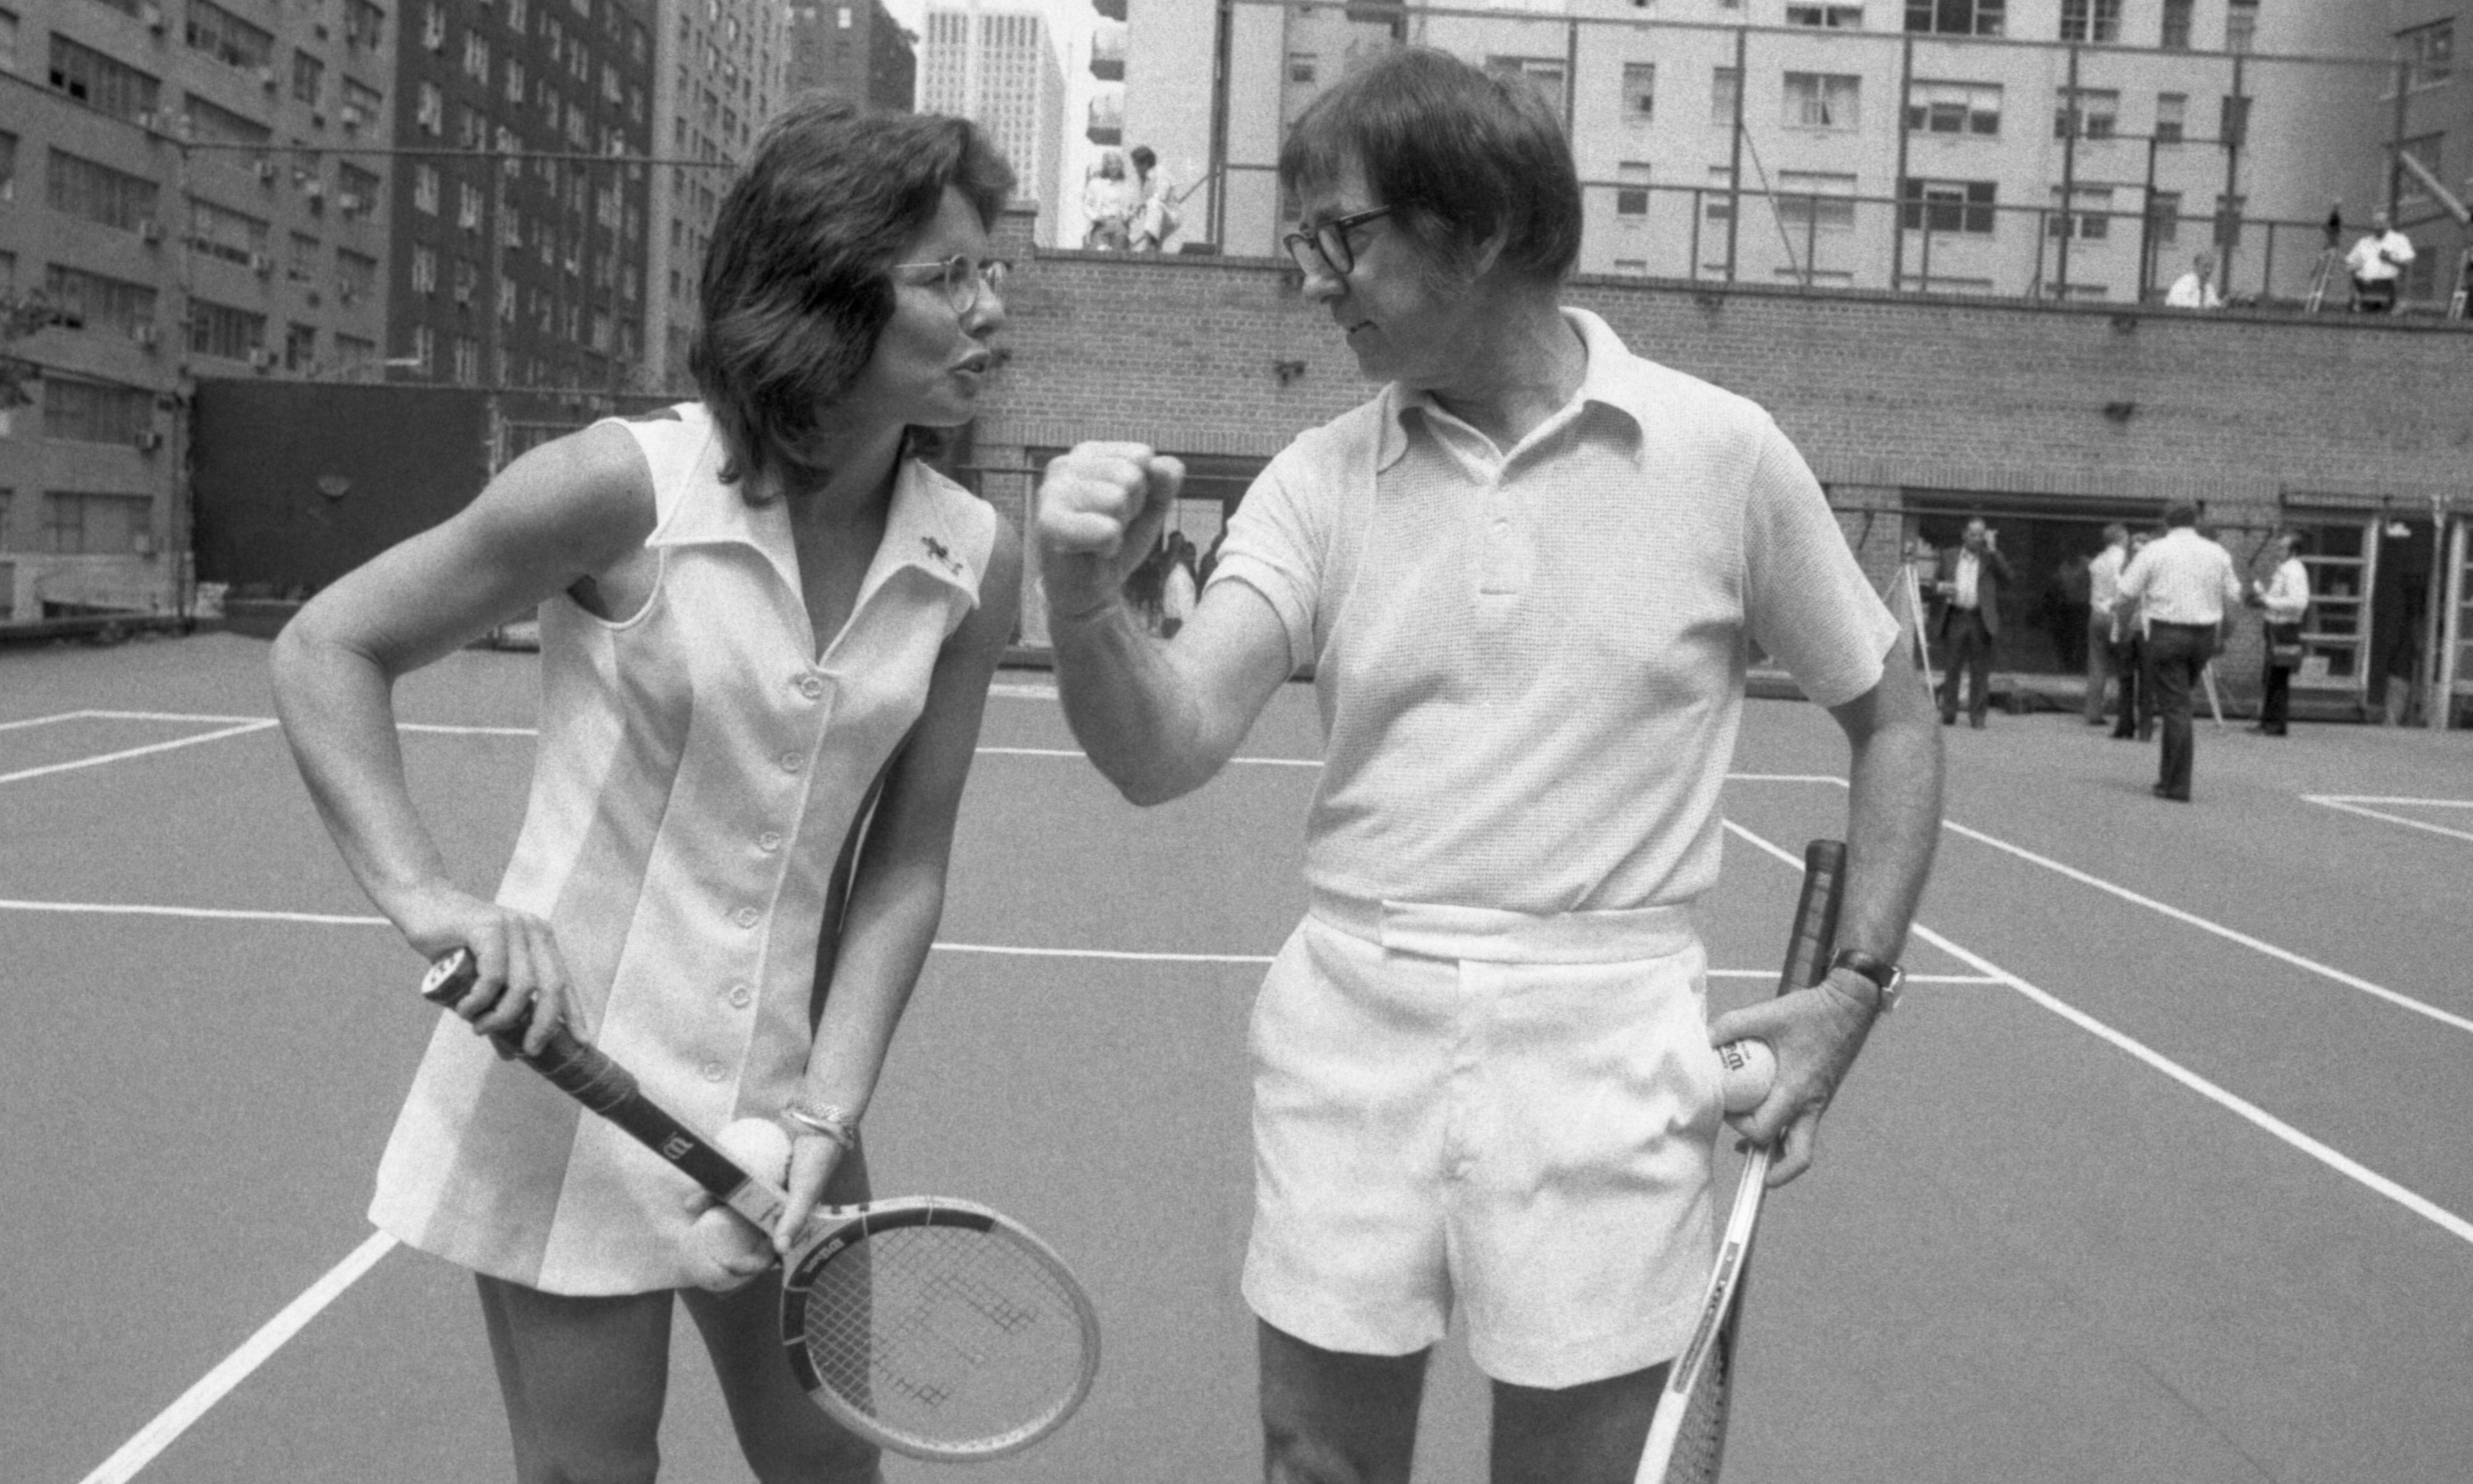 Facts mix with fiction yet Battle of the Sexes may still be underplayed